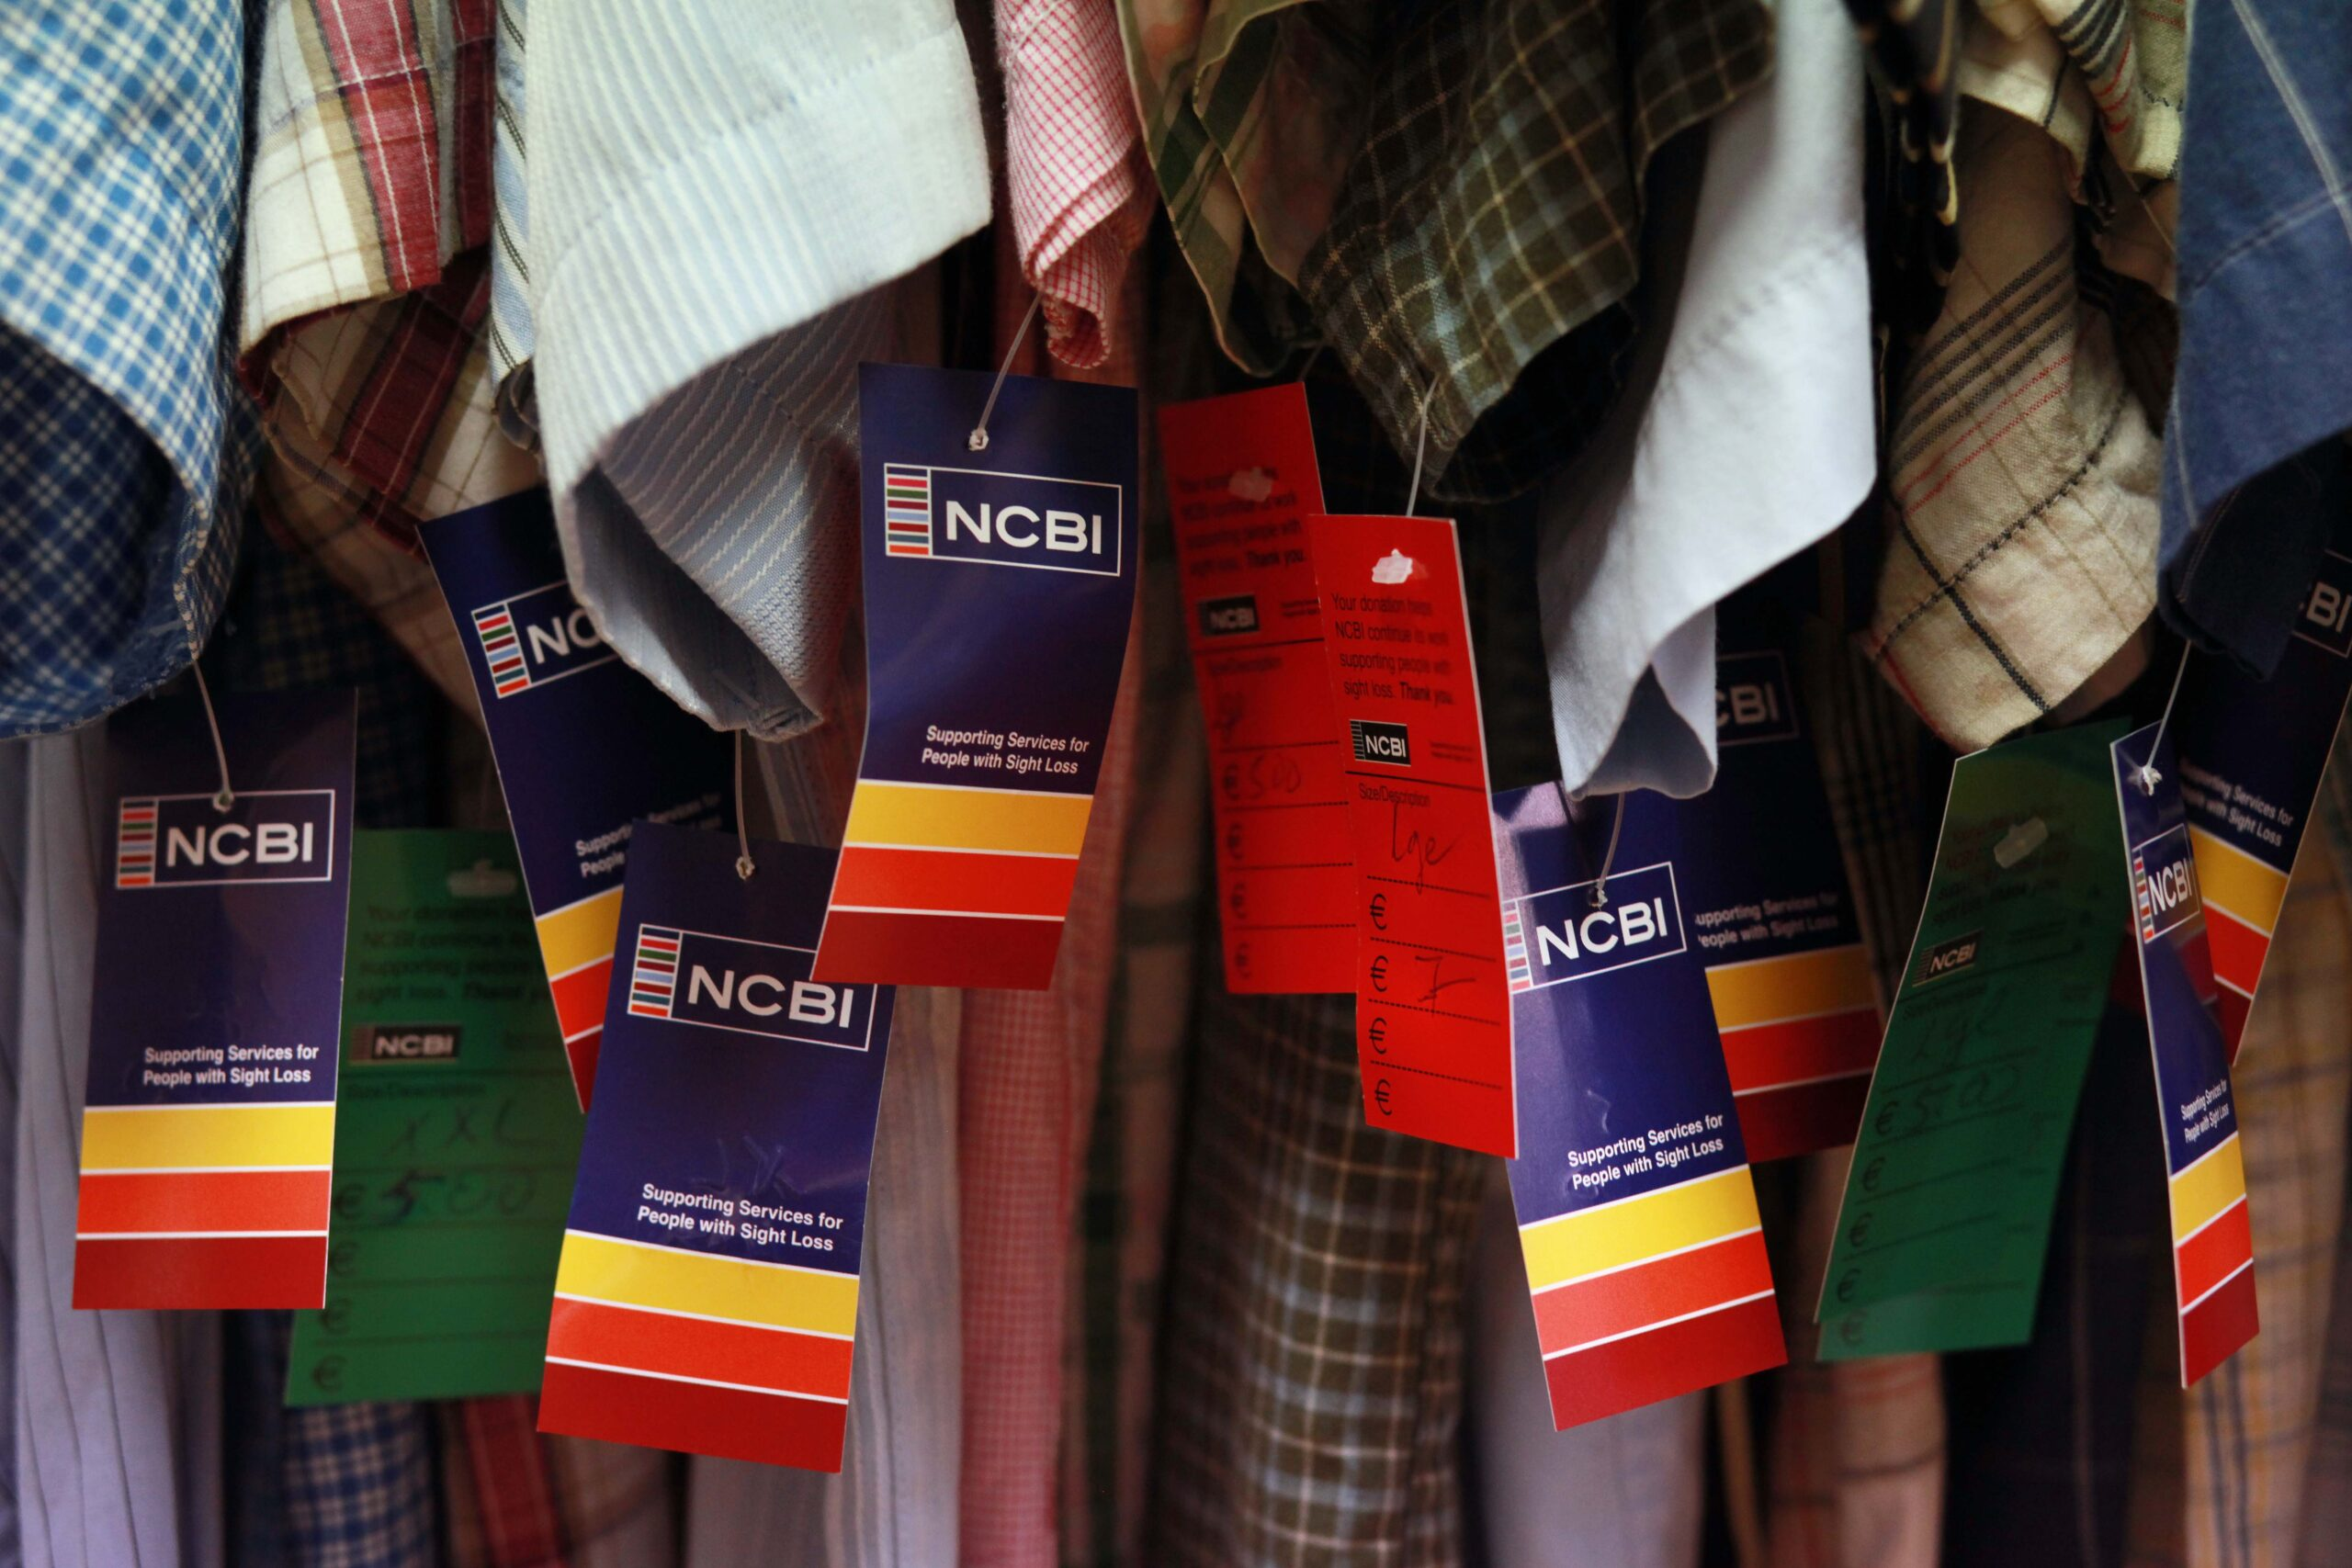 Rail full of clothes with NCBI price tags